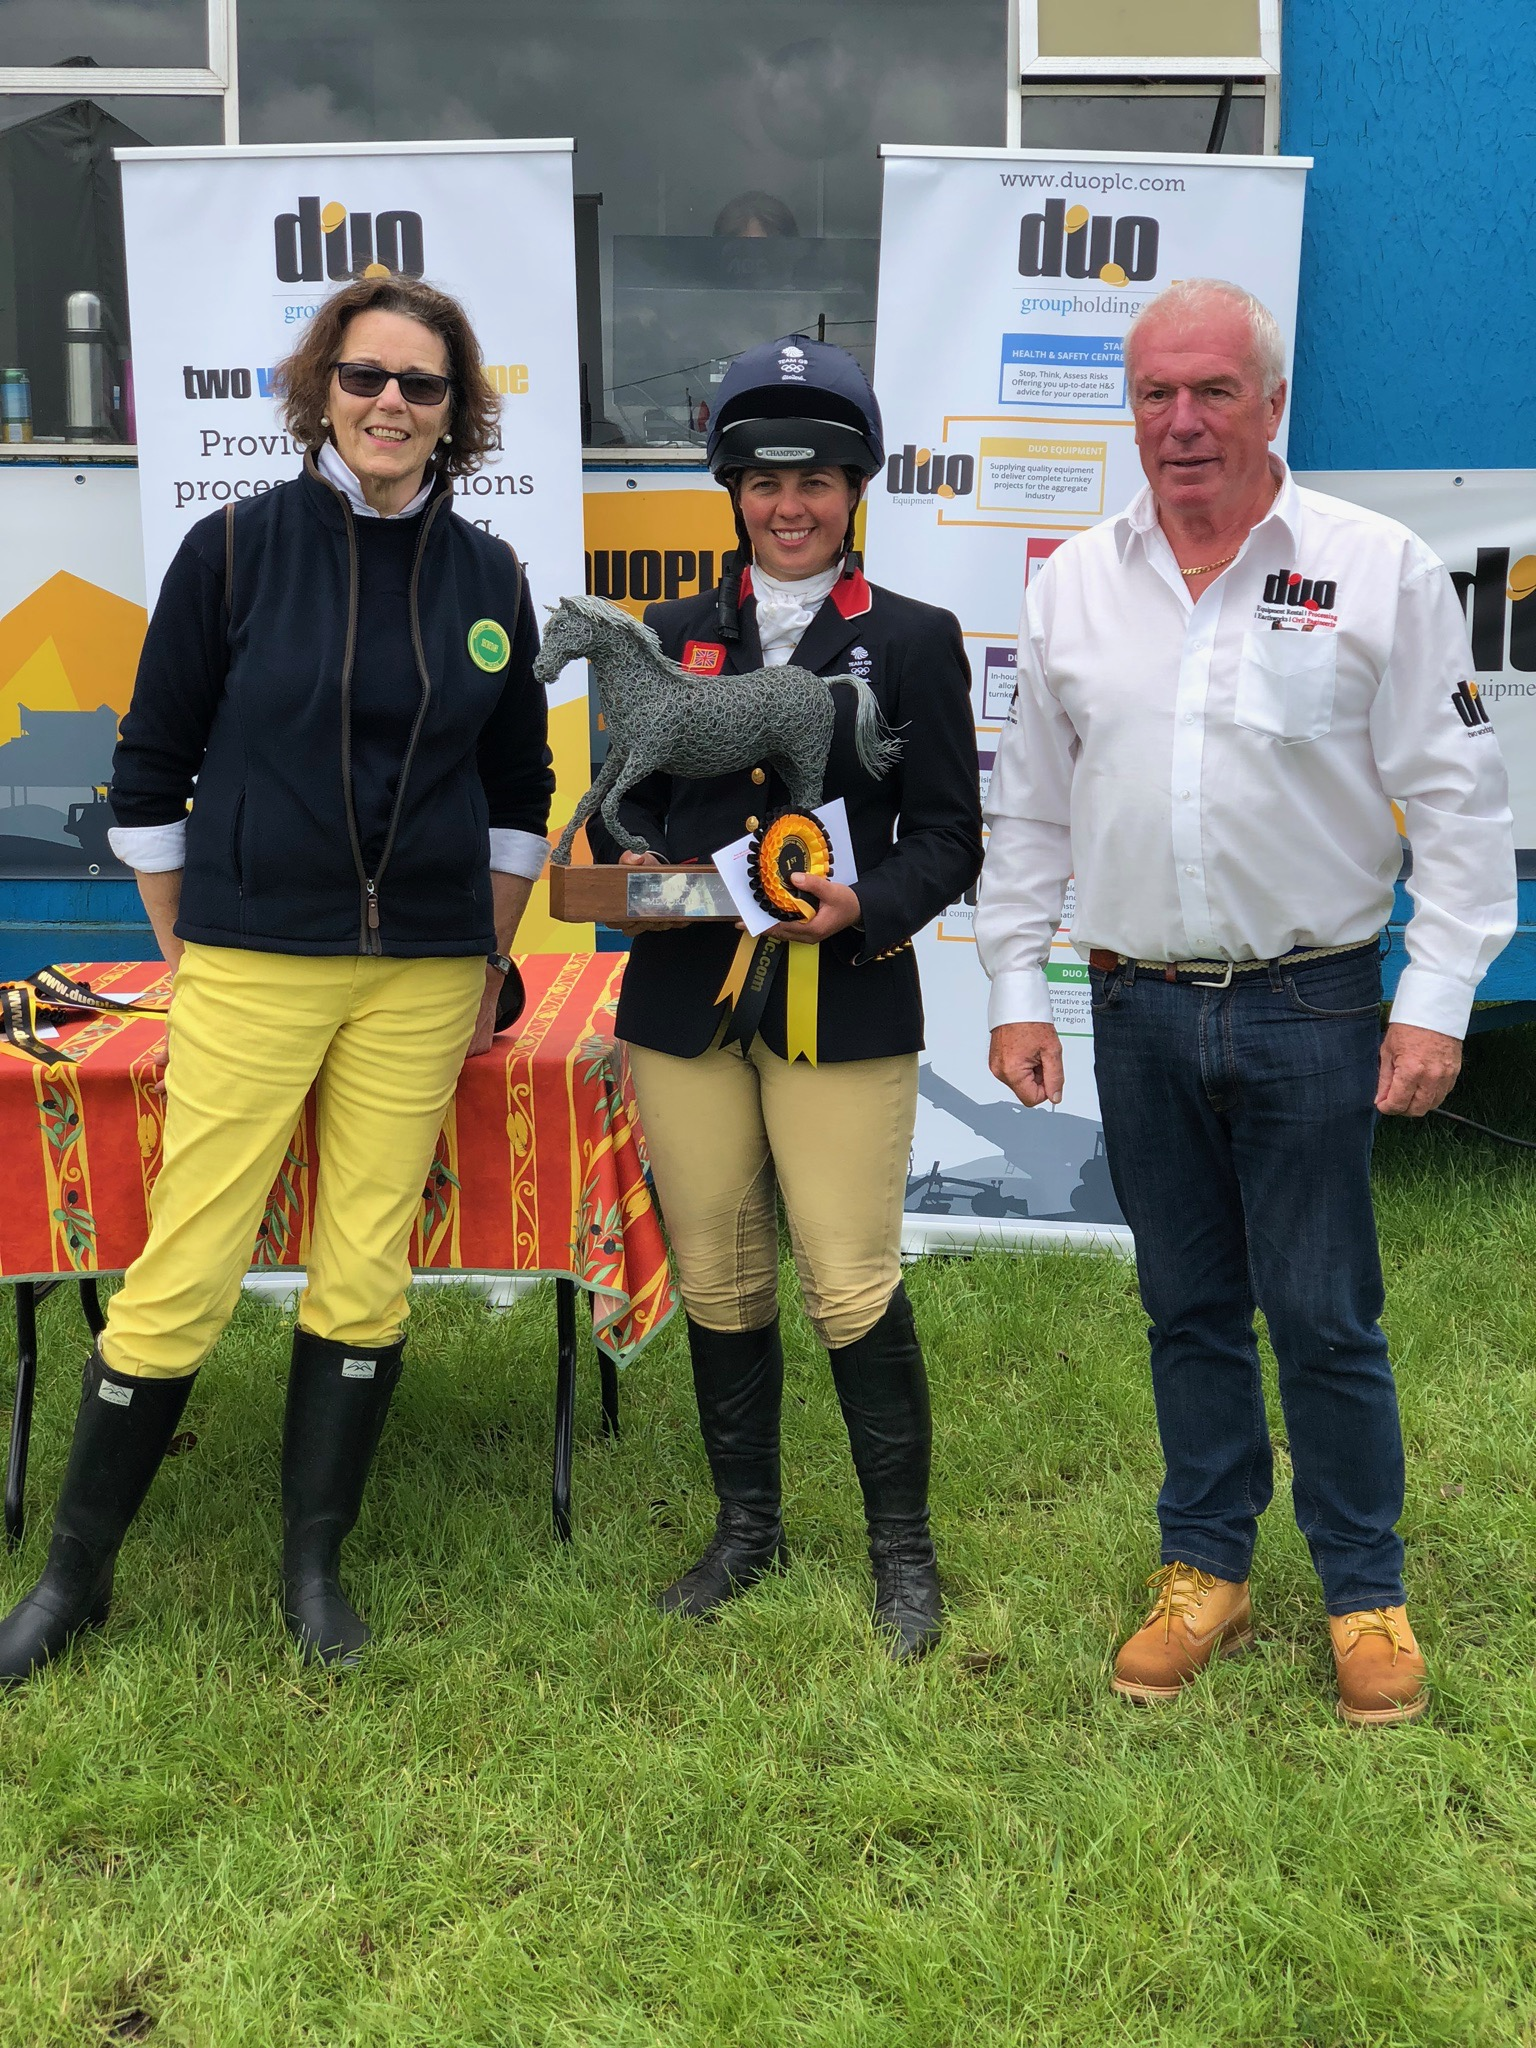 Press release: King reigns supreme at Nunney International